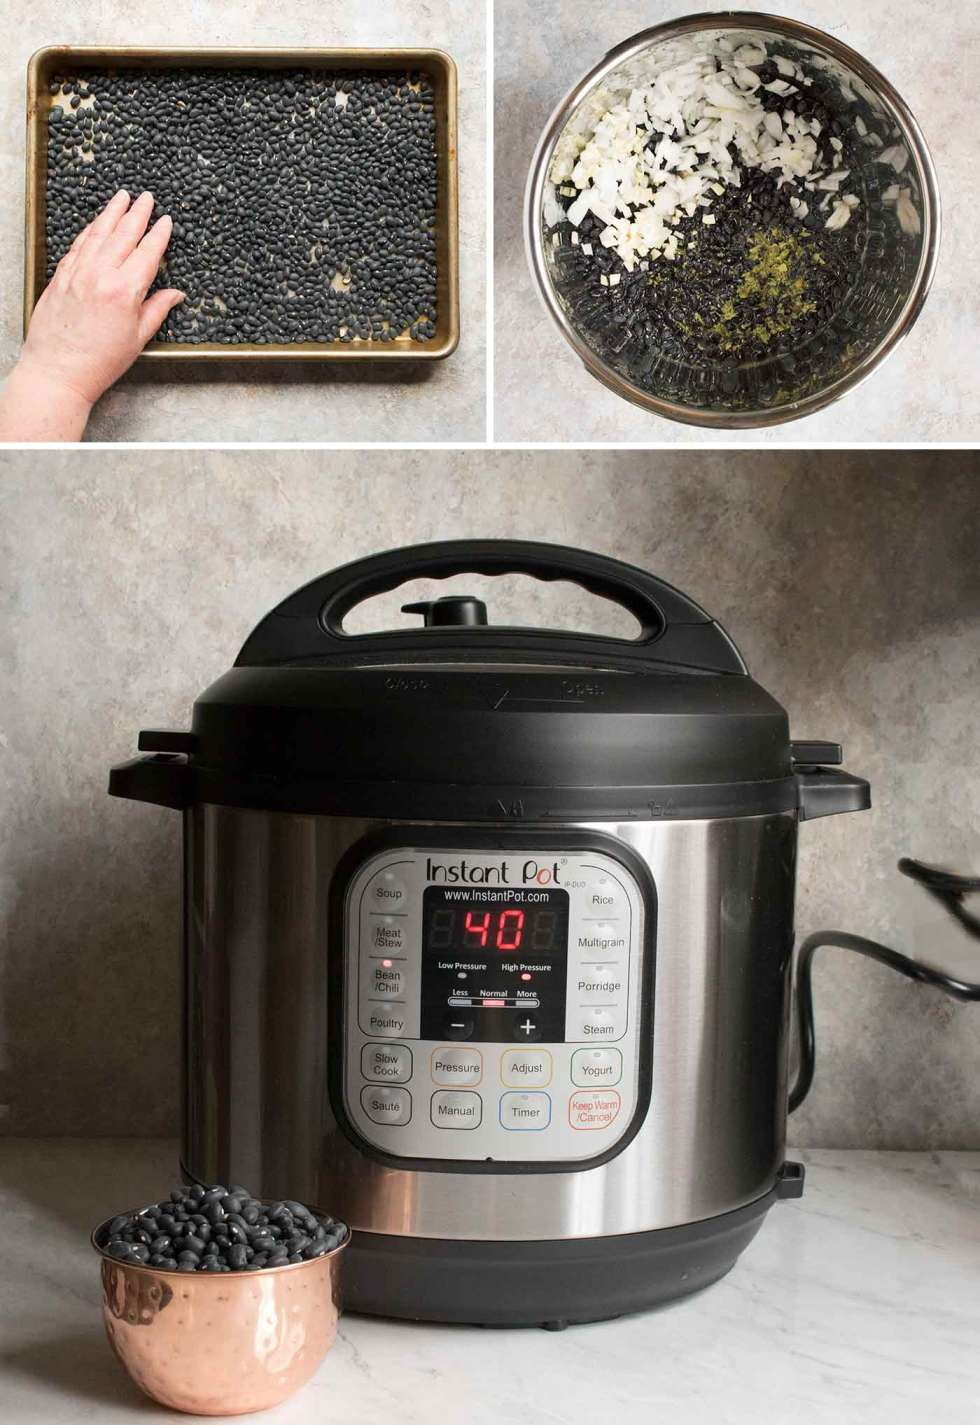 Preparing black beans to cook in the Instant Pot